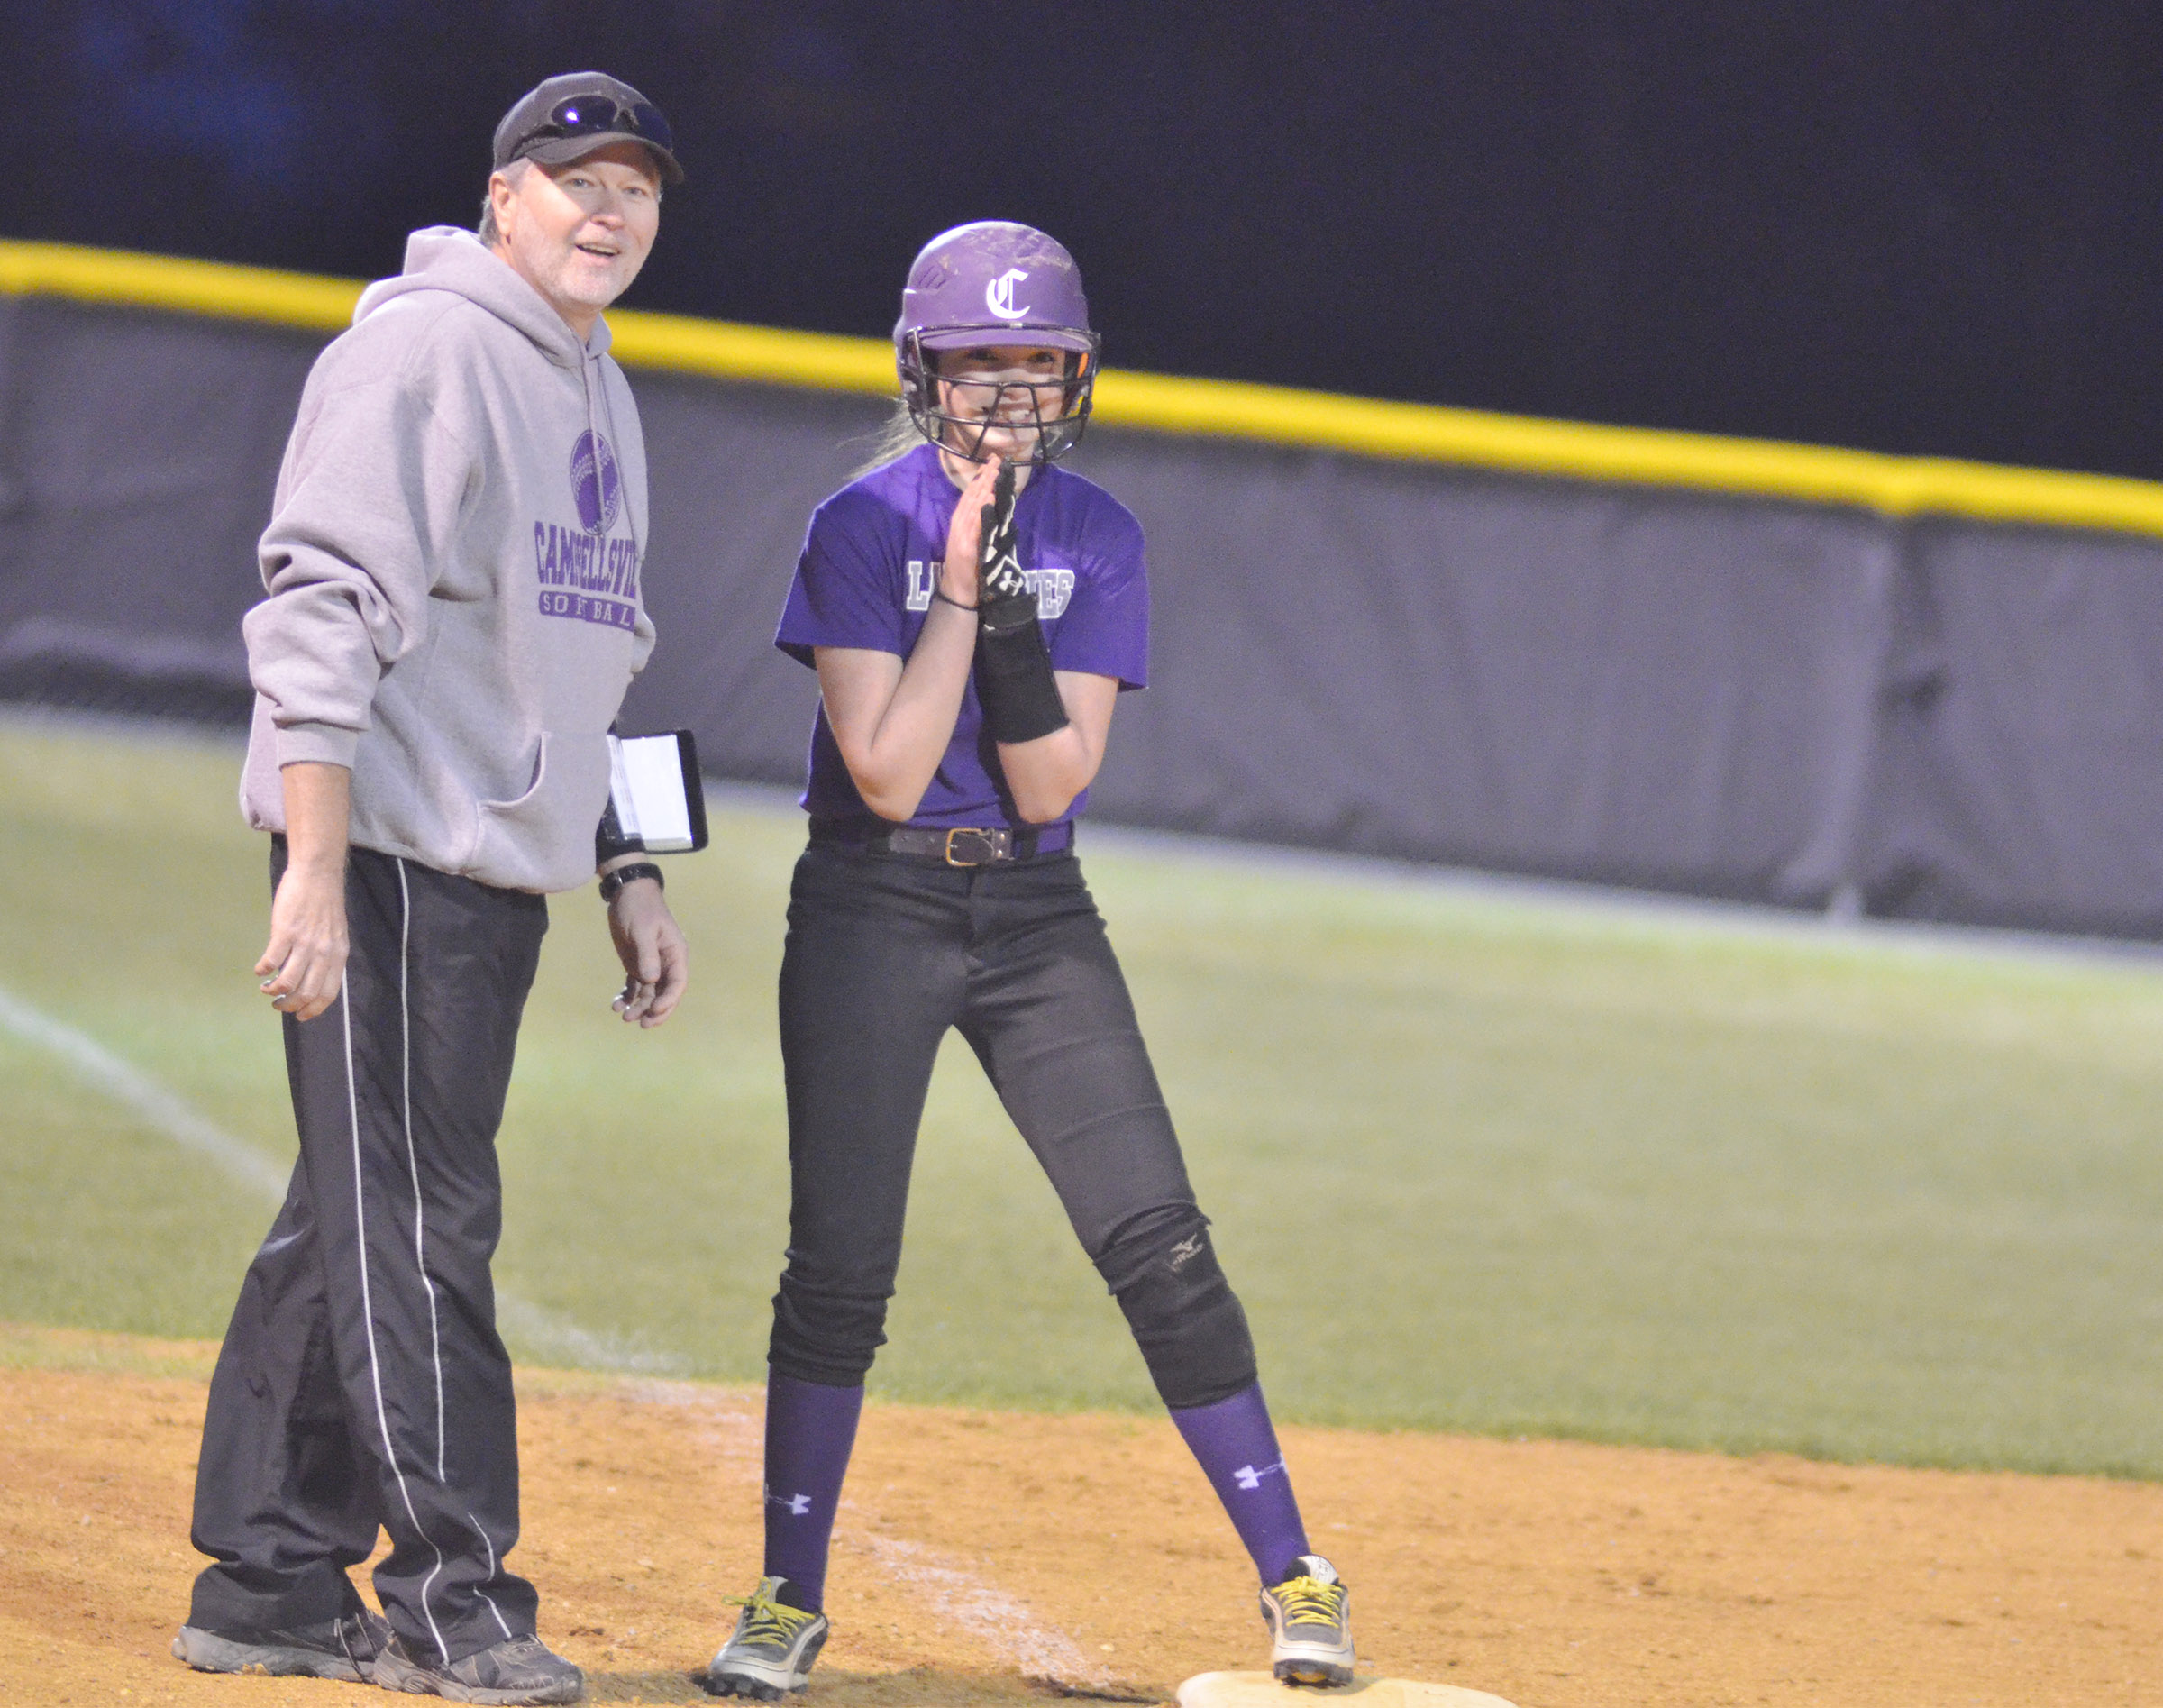 CMS seventh-grader Karley Morris smiles as she gets set to score. At left is assistant coach Bobby Hayes.